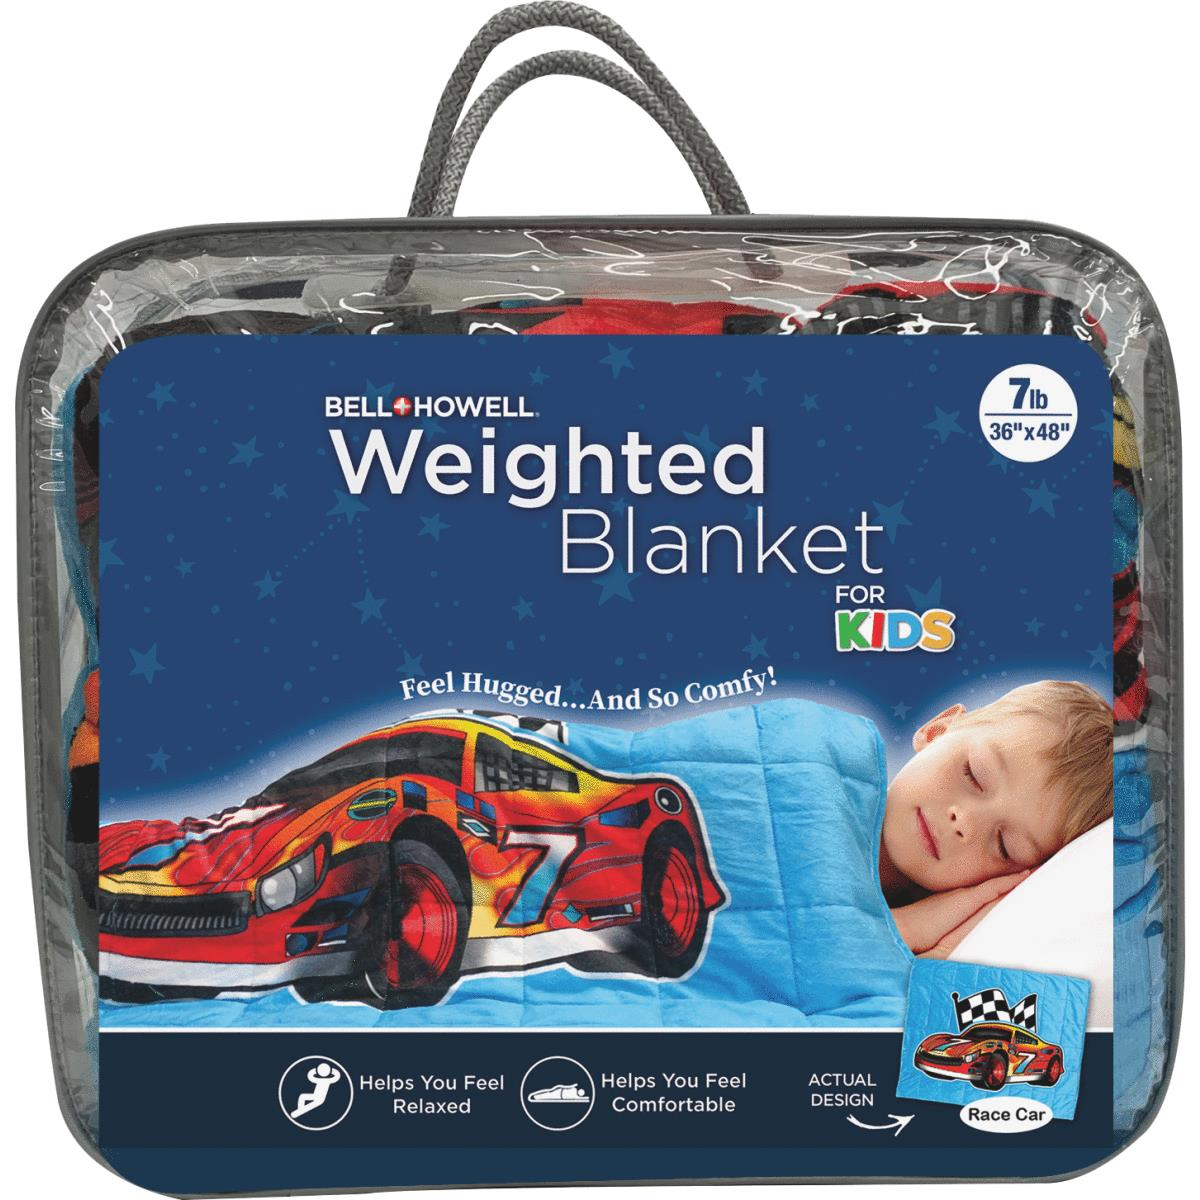 Bell+Howell Kids Weighted Blanket